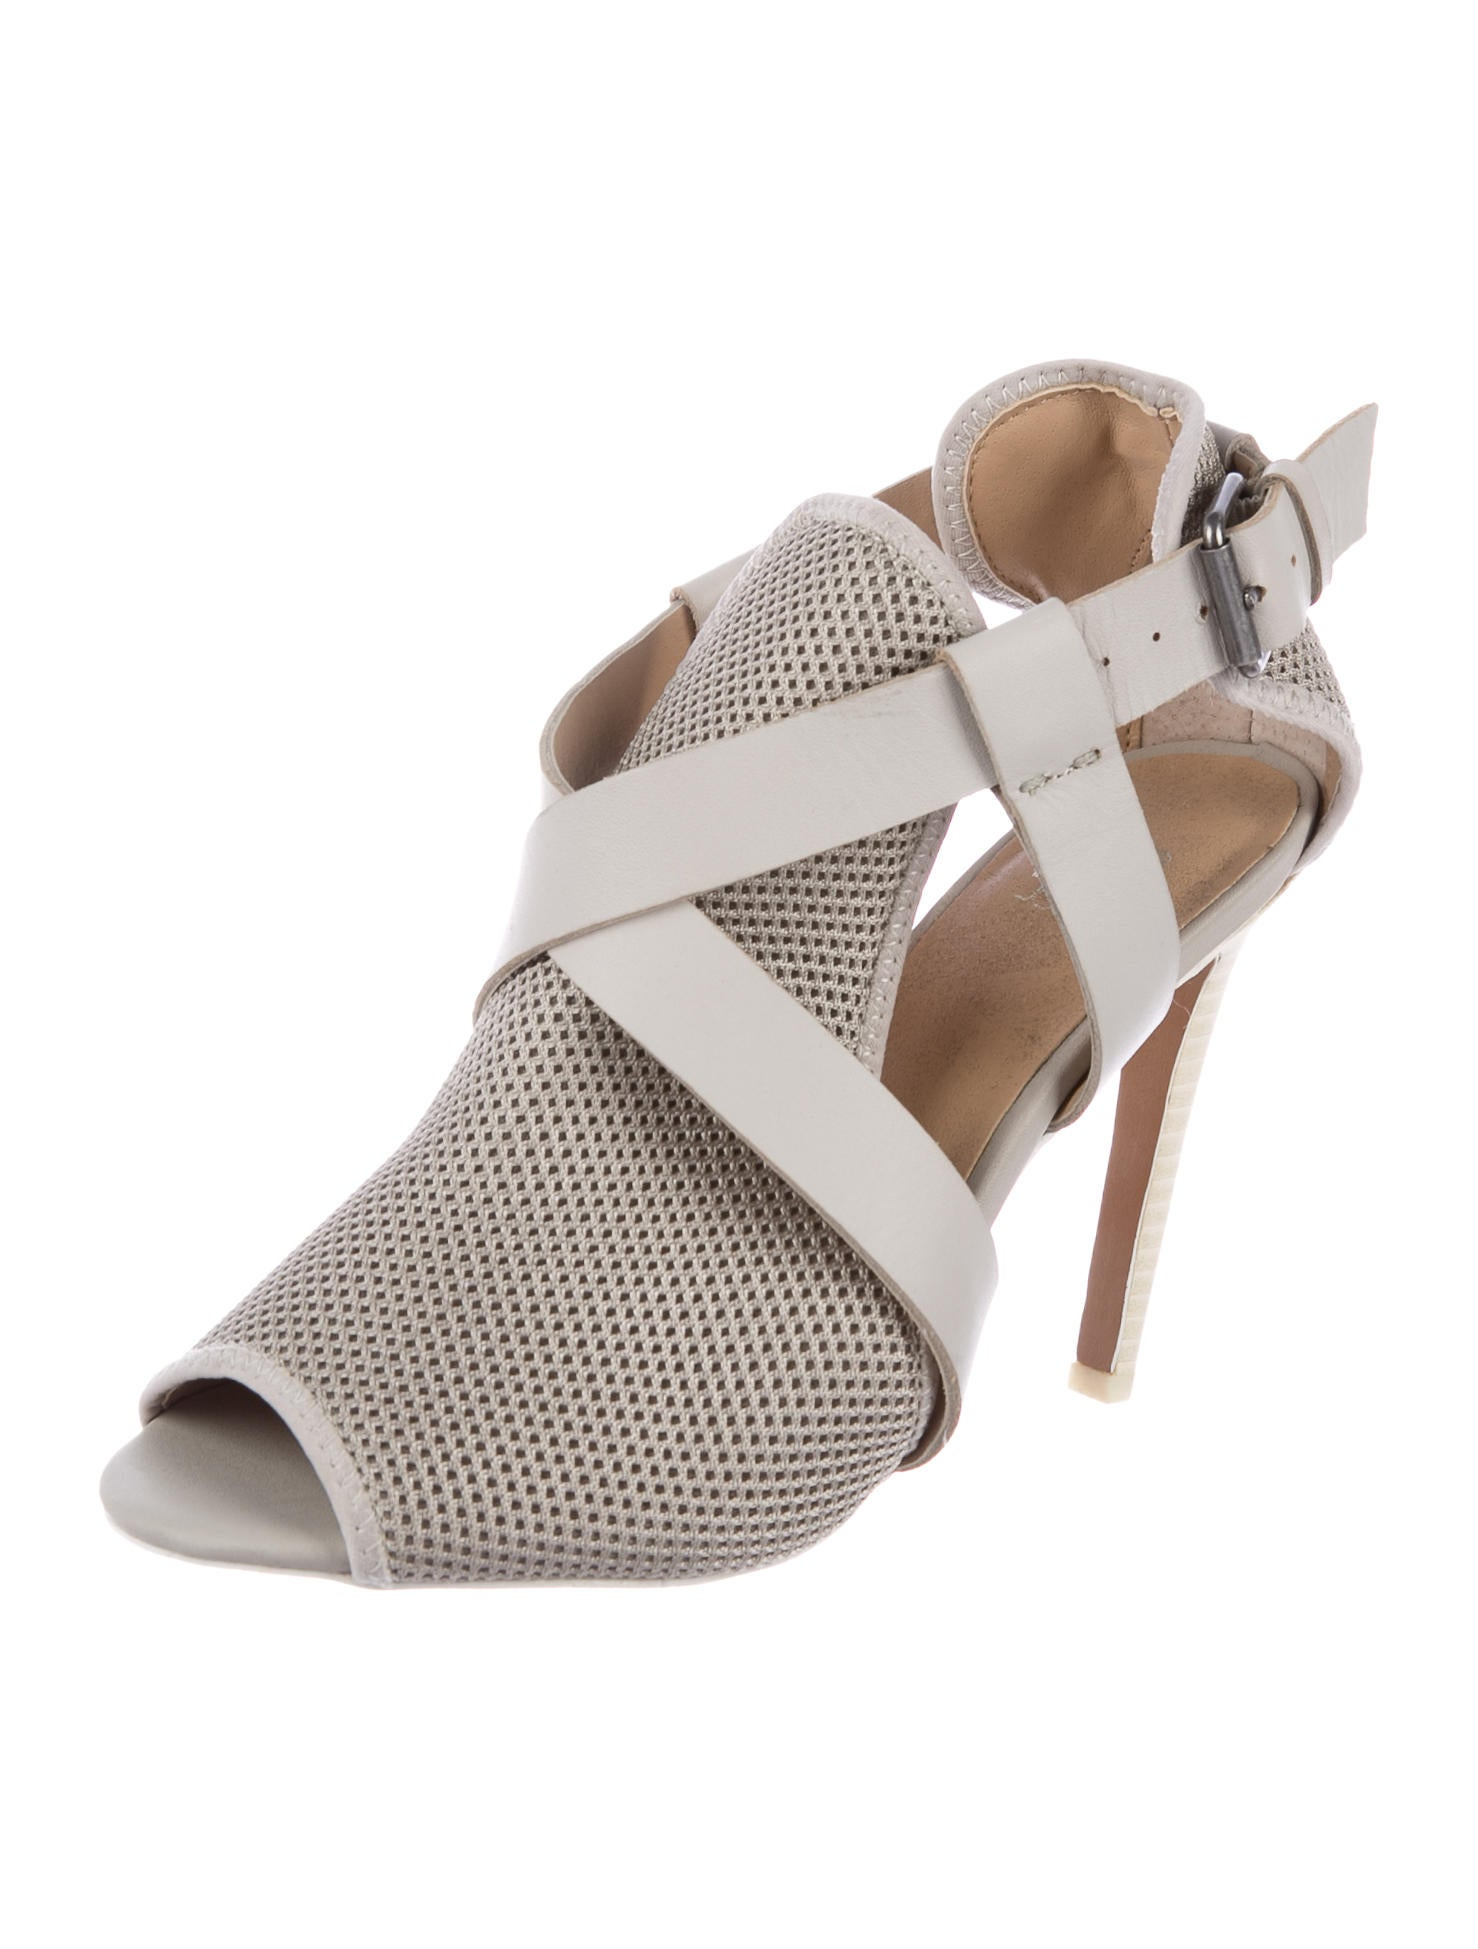 Joe's Crossover Peep-Toe Booties looking for sale online really for sale buy cheap classic tJhL0